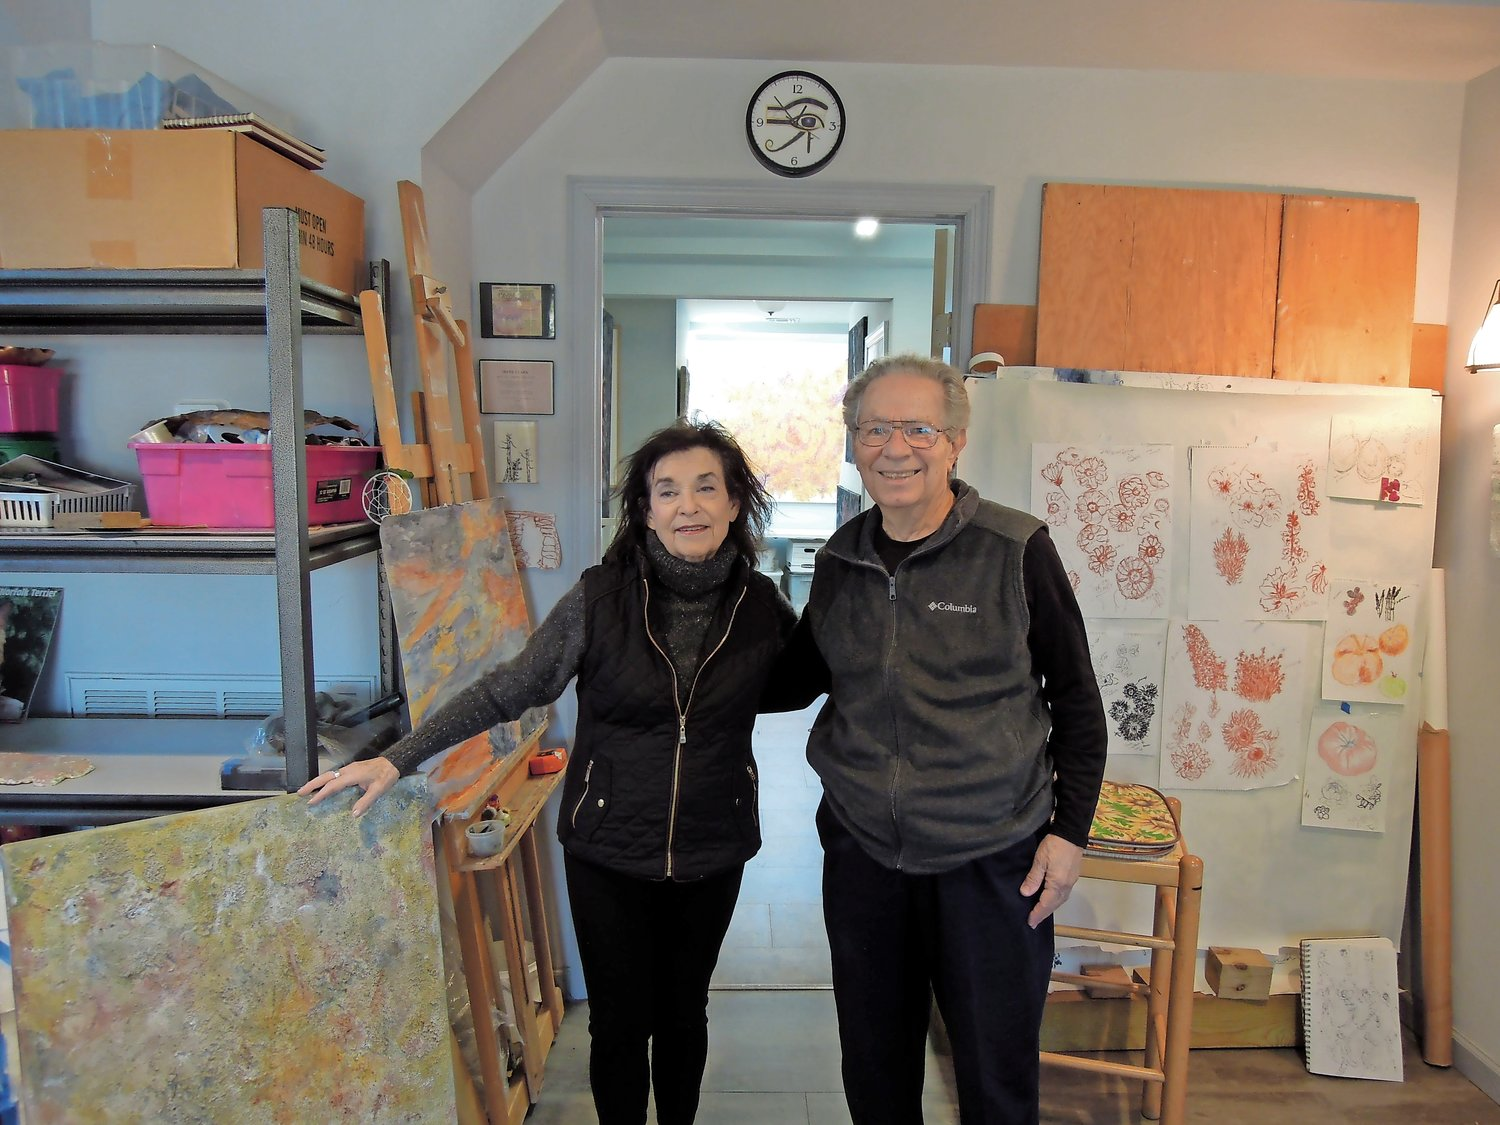 Thomas and his wife of 59 years, artist Irene Clark, have lived on the South Shore since 2008.